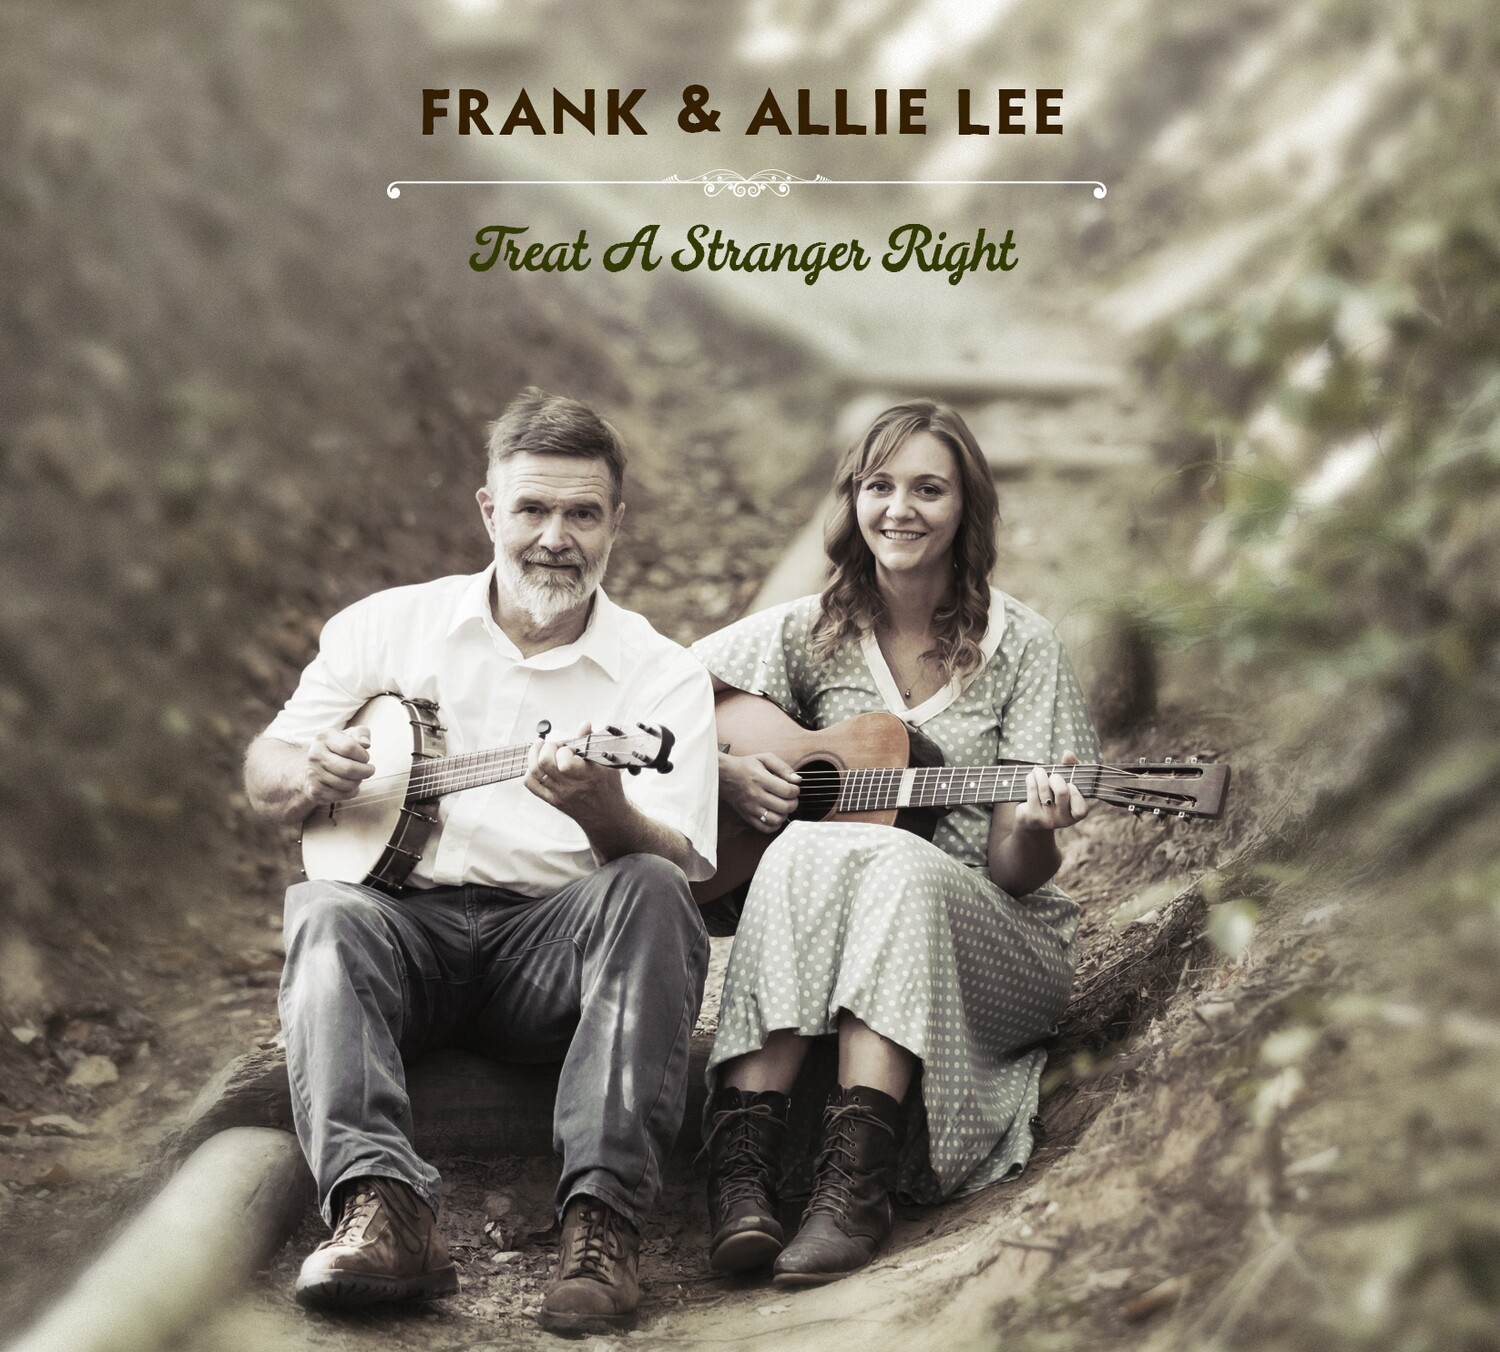 Treat A Stranger Right - Frank & Allie Lee (2020)